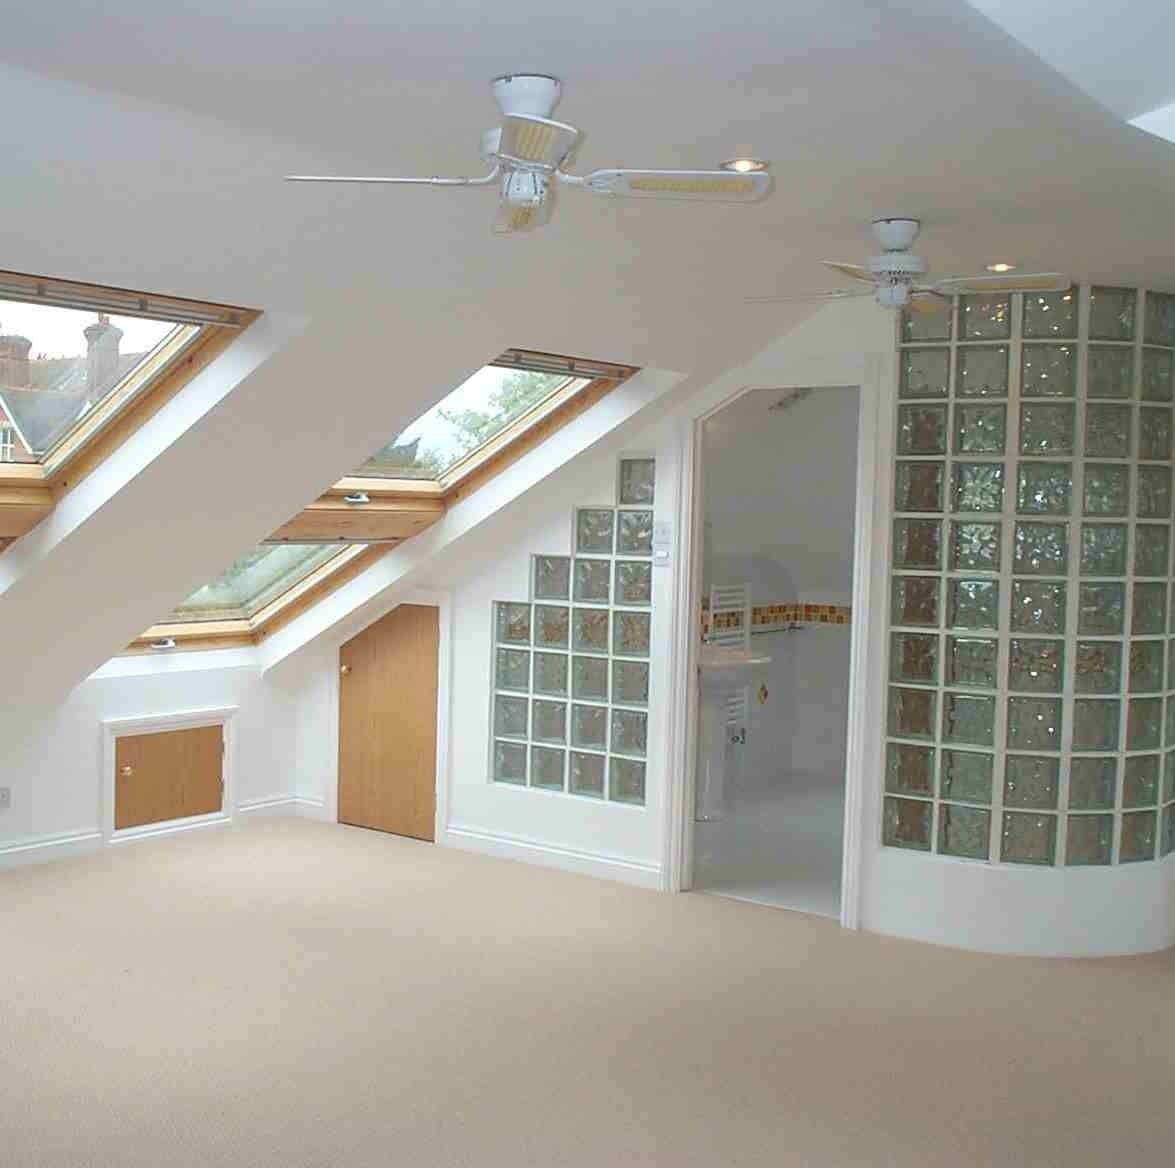 Loft bedroom privacy ideas  Attic room with privacy glass dividers  attic bathroom  Pinterest